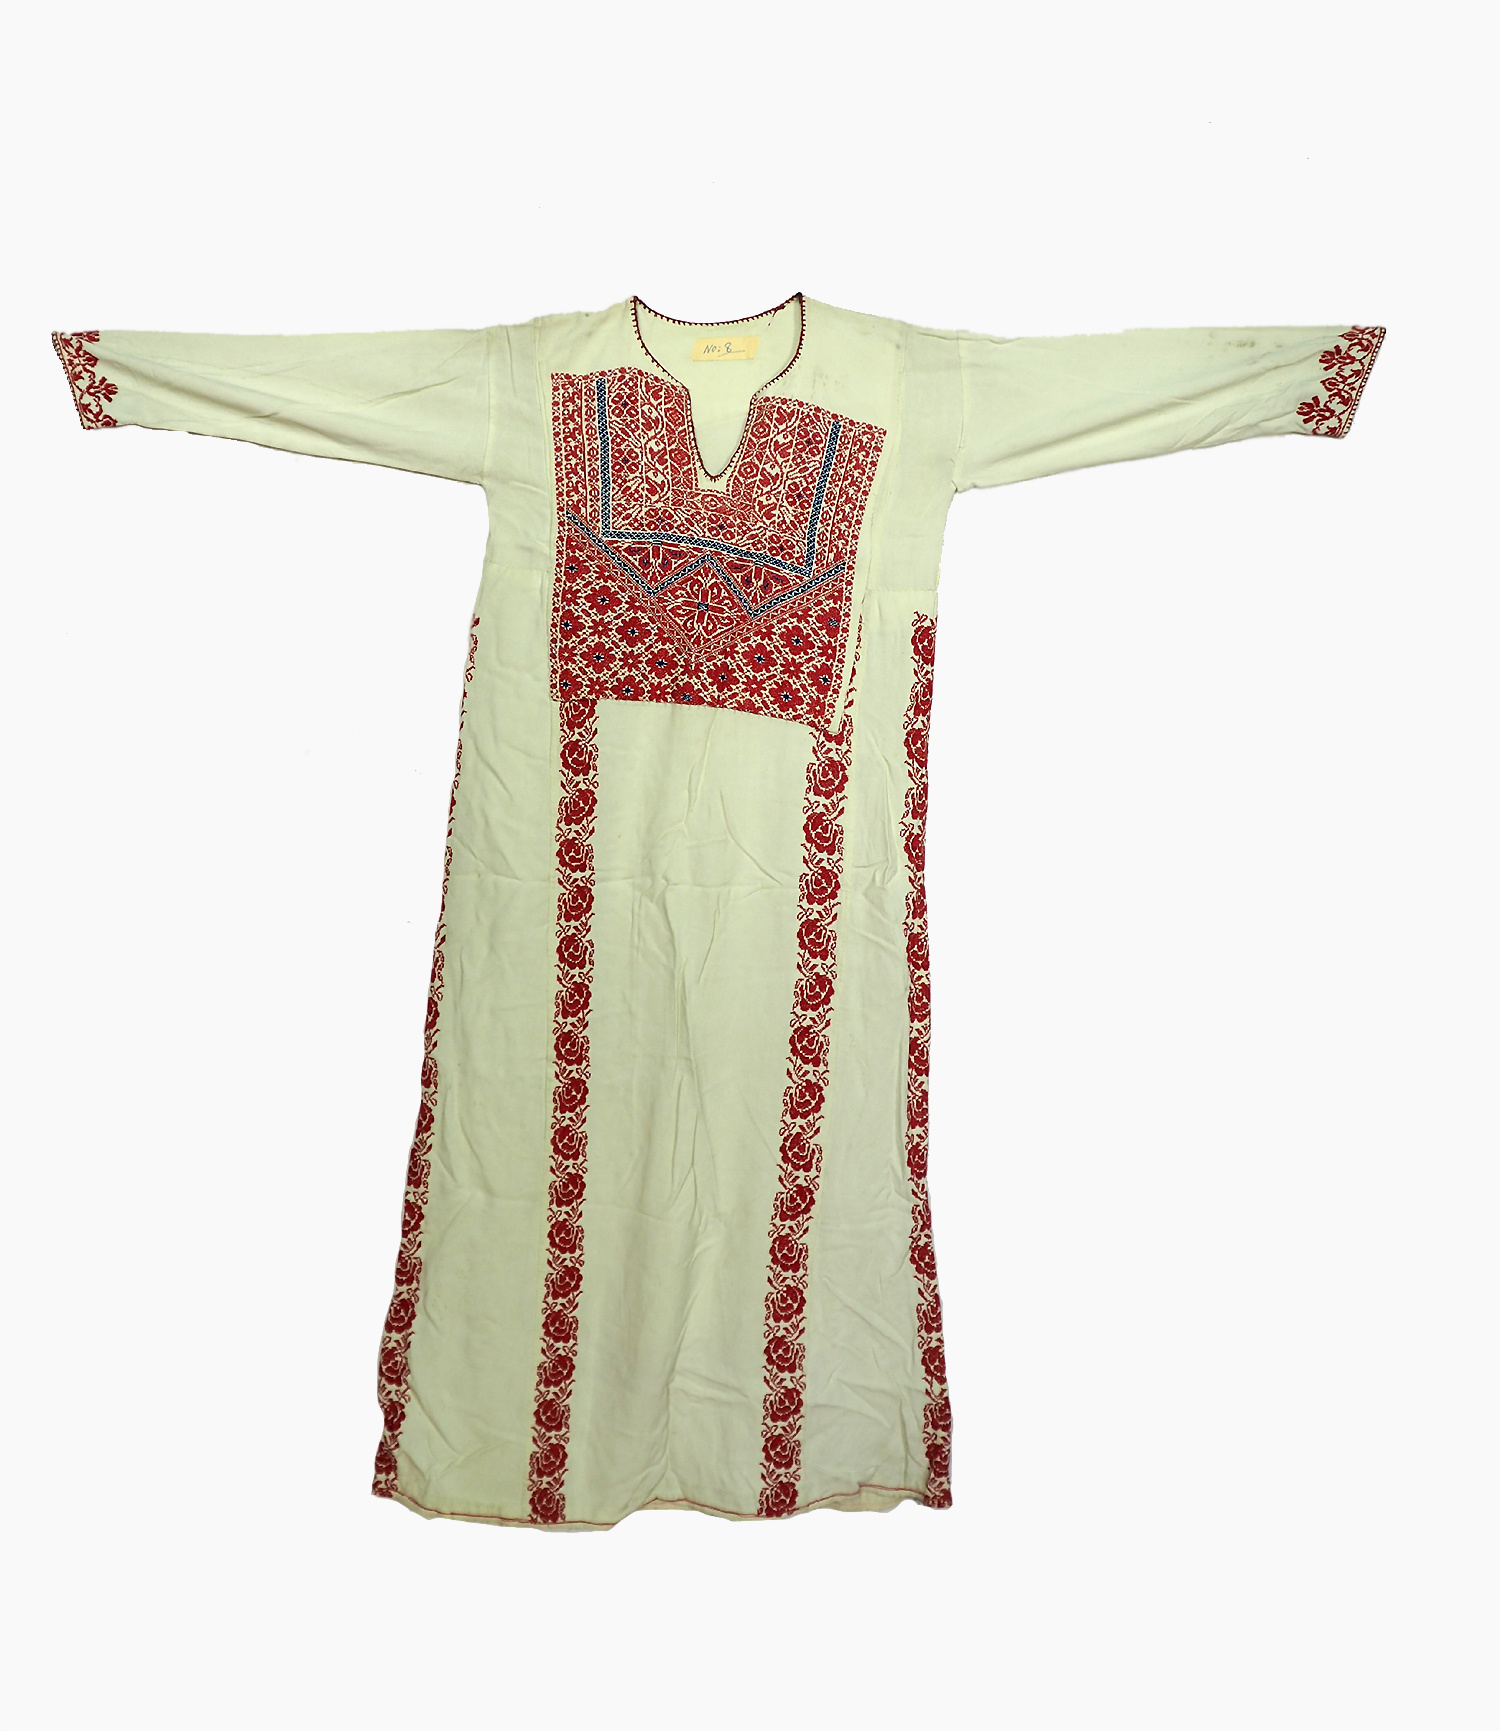 Palestinian girls embroidered ethnic dress No:8